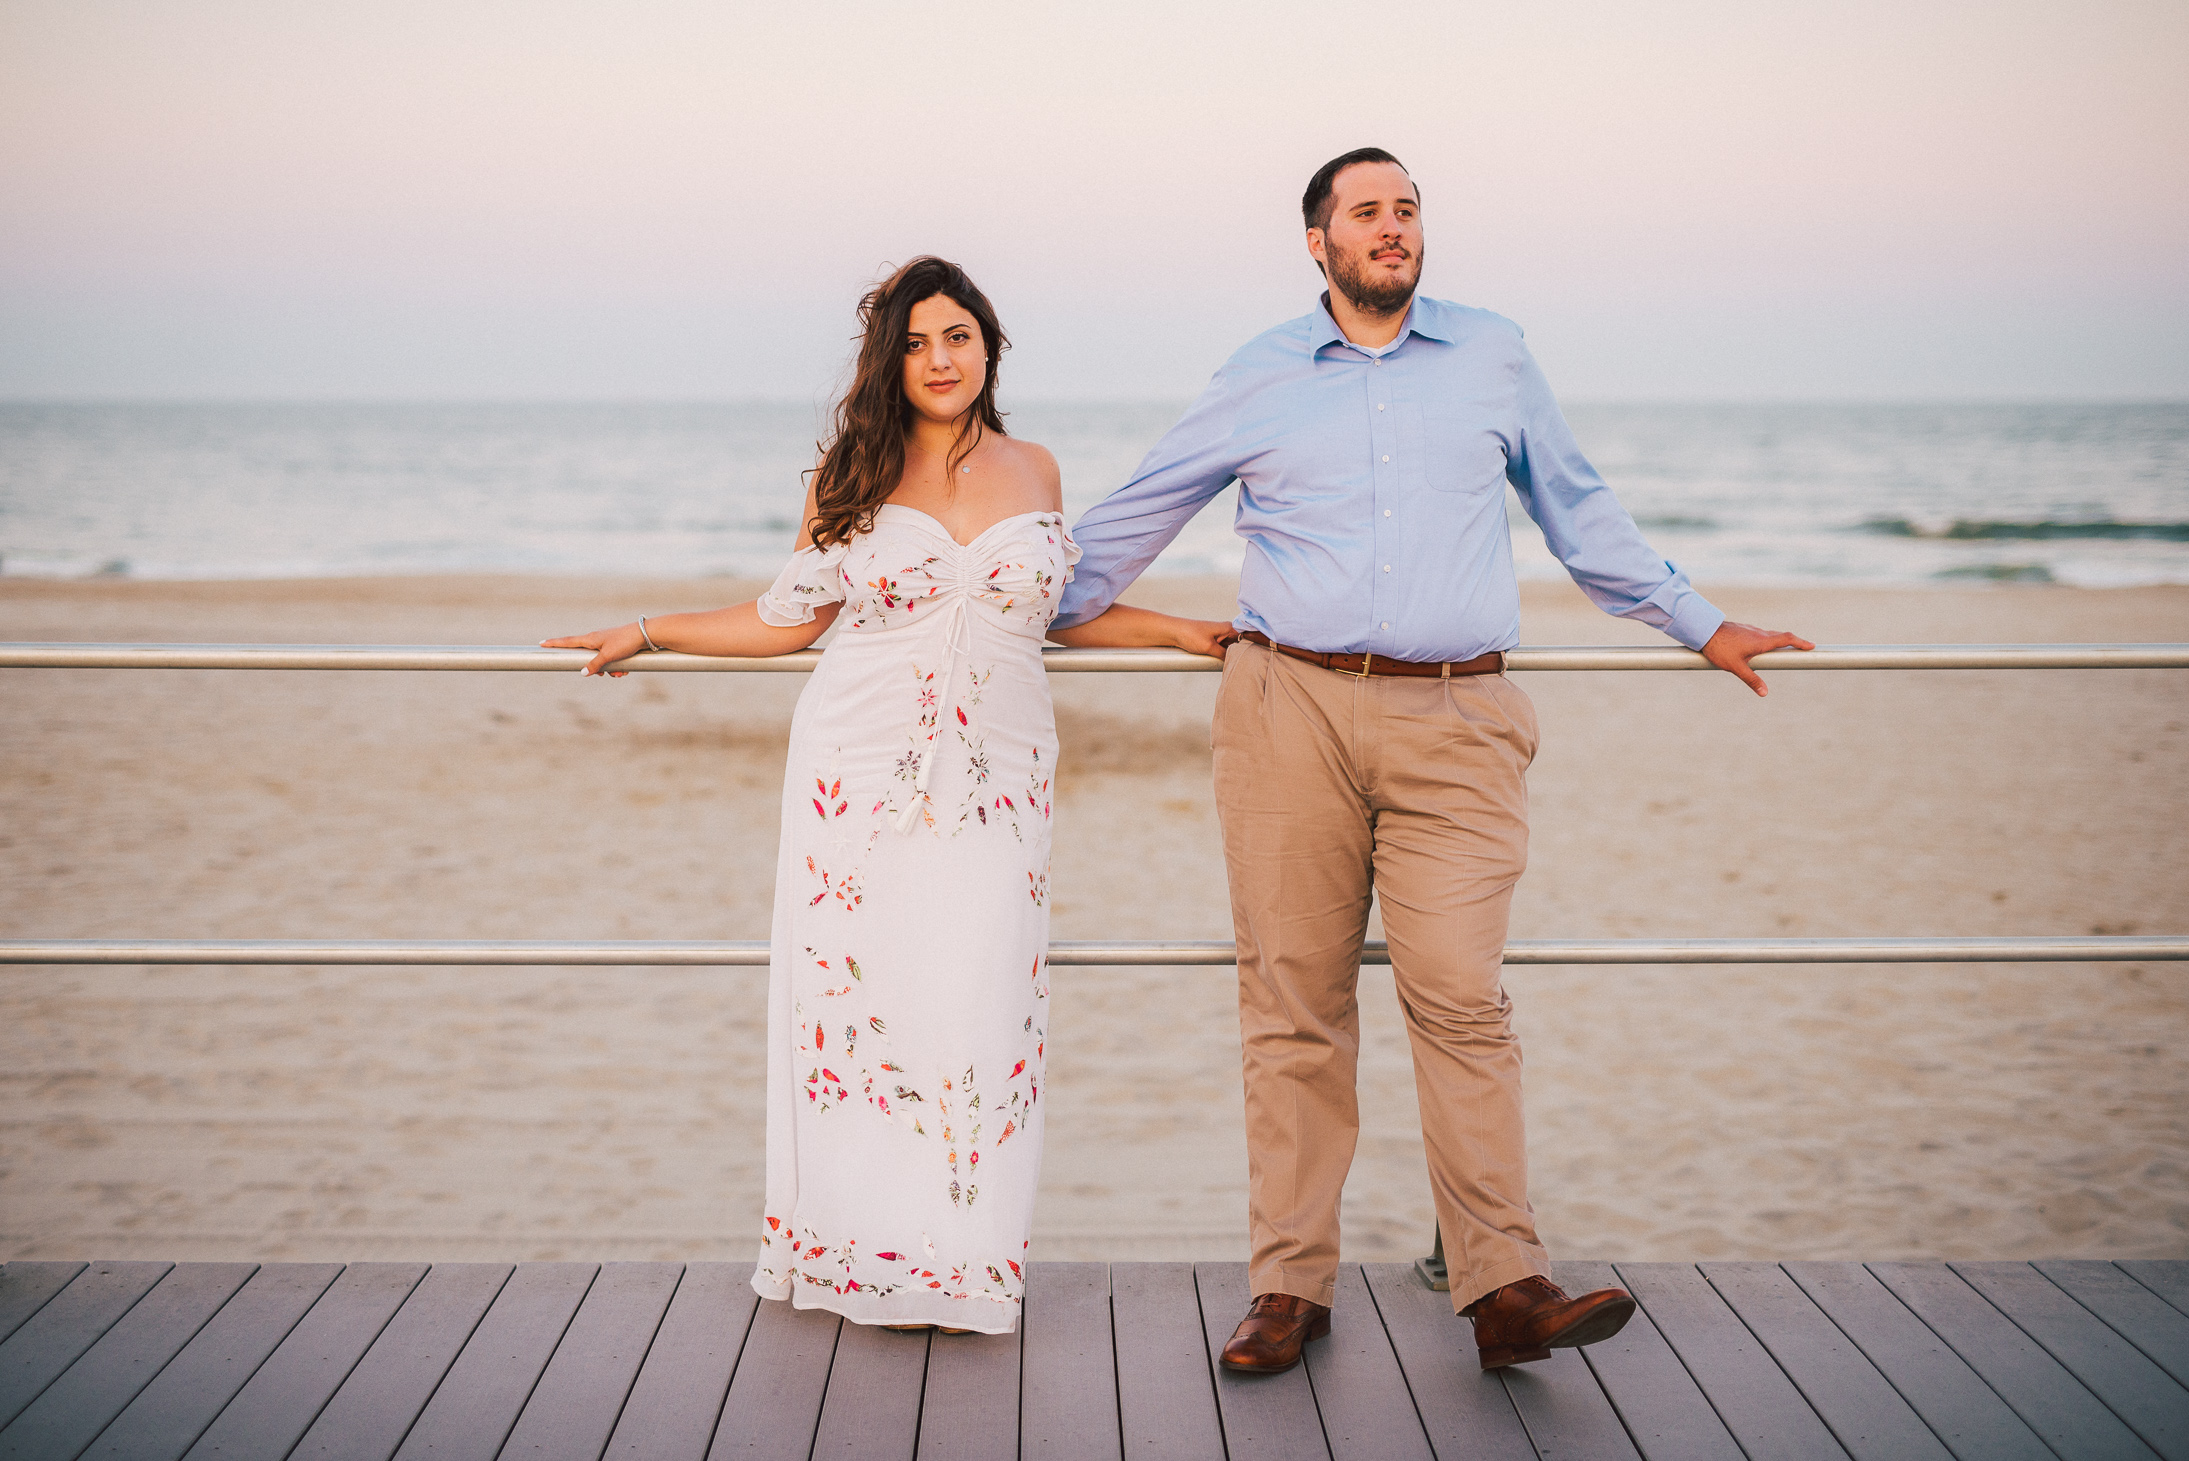 E&K_engagement-176.jpg